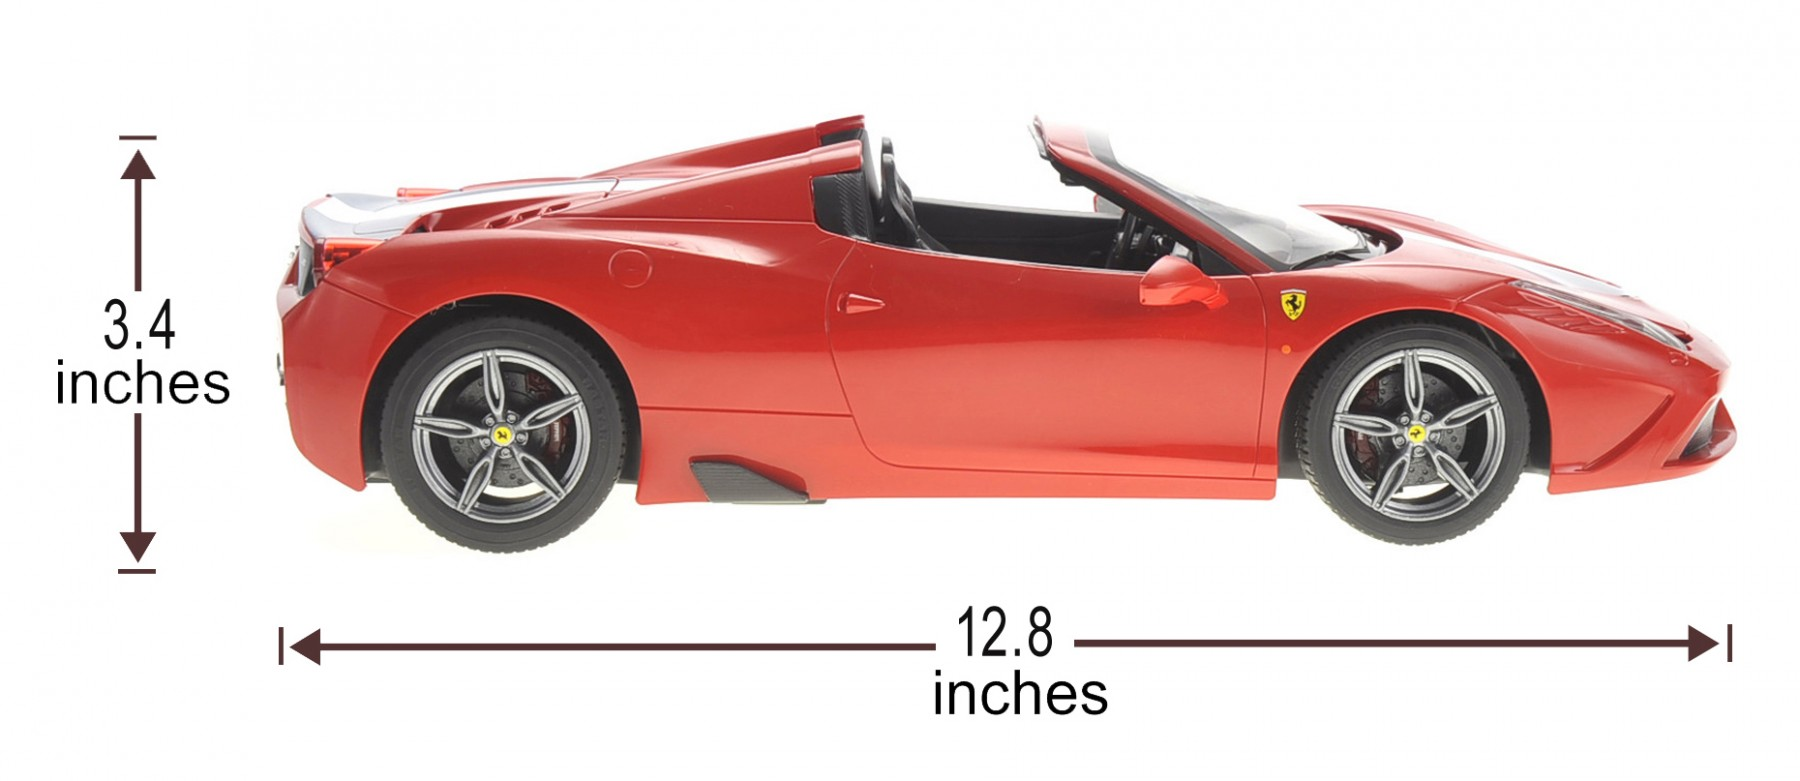 Genial Remote Control Ferrari 458 Spider RC Car Convertible W/Motorized Opening  Roof